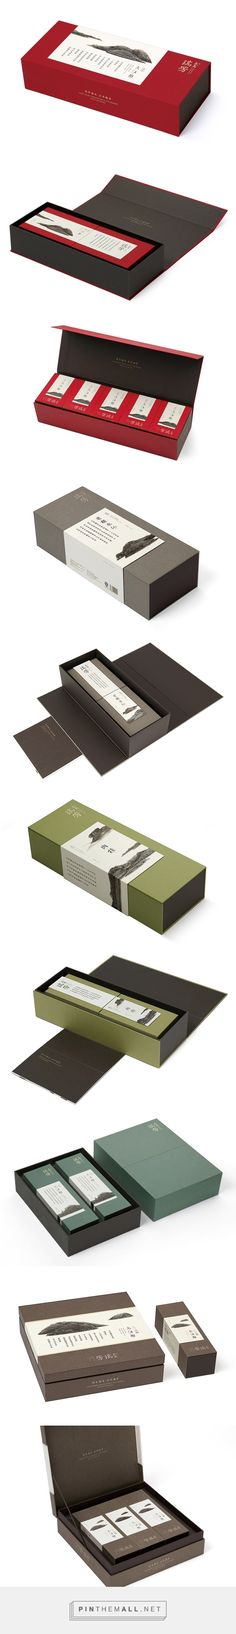 WUYI RUIFANG TEA #packaging PD